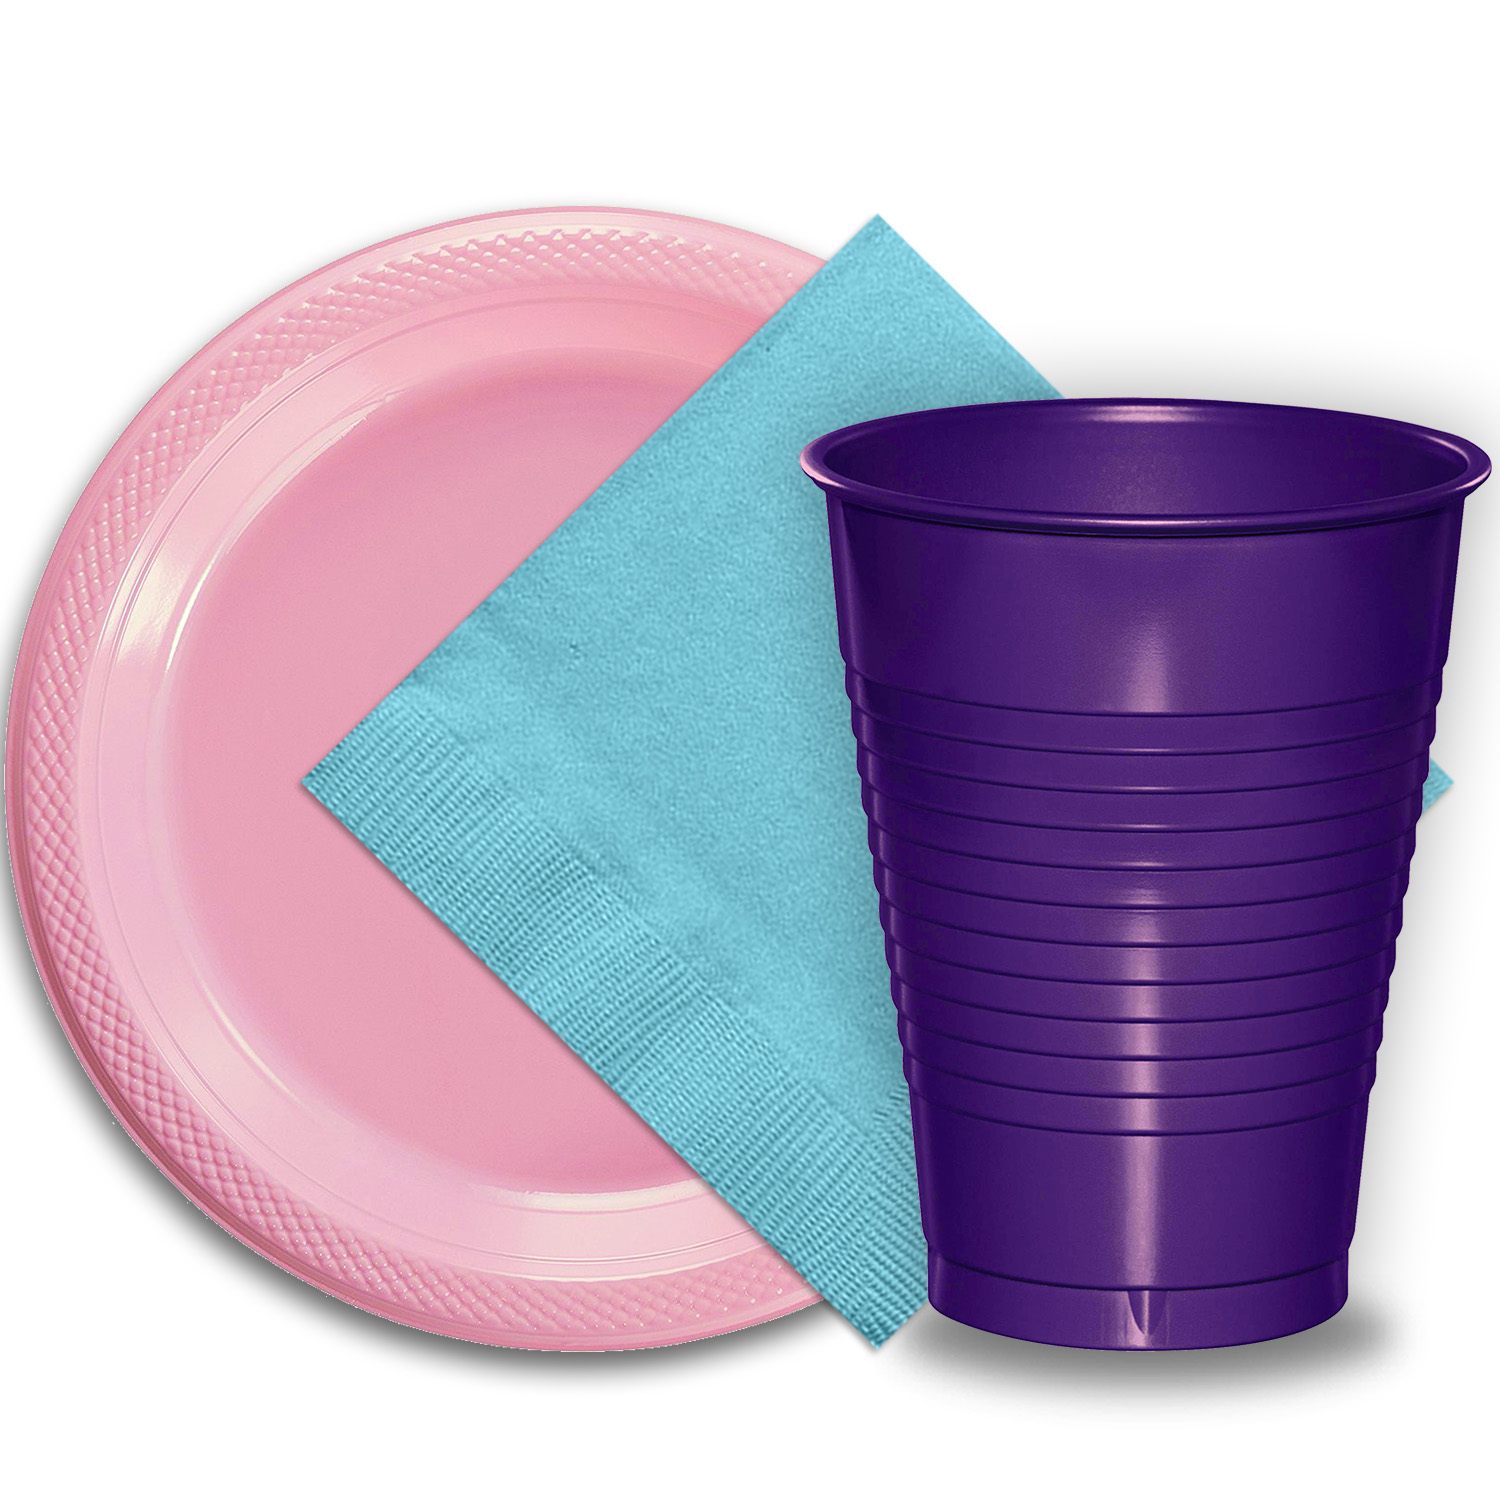 """50 Pink Plastic Plates (9""""), 50 Purple Plastic Cups (12 oz.), and 50 Light Blue Paper Napkins, Dazzelling Colored Disposable Party Supplies Tableware Set for Fifty Guests."""